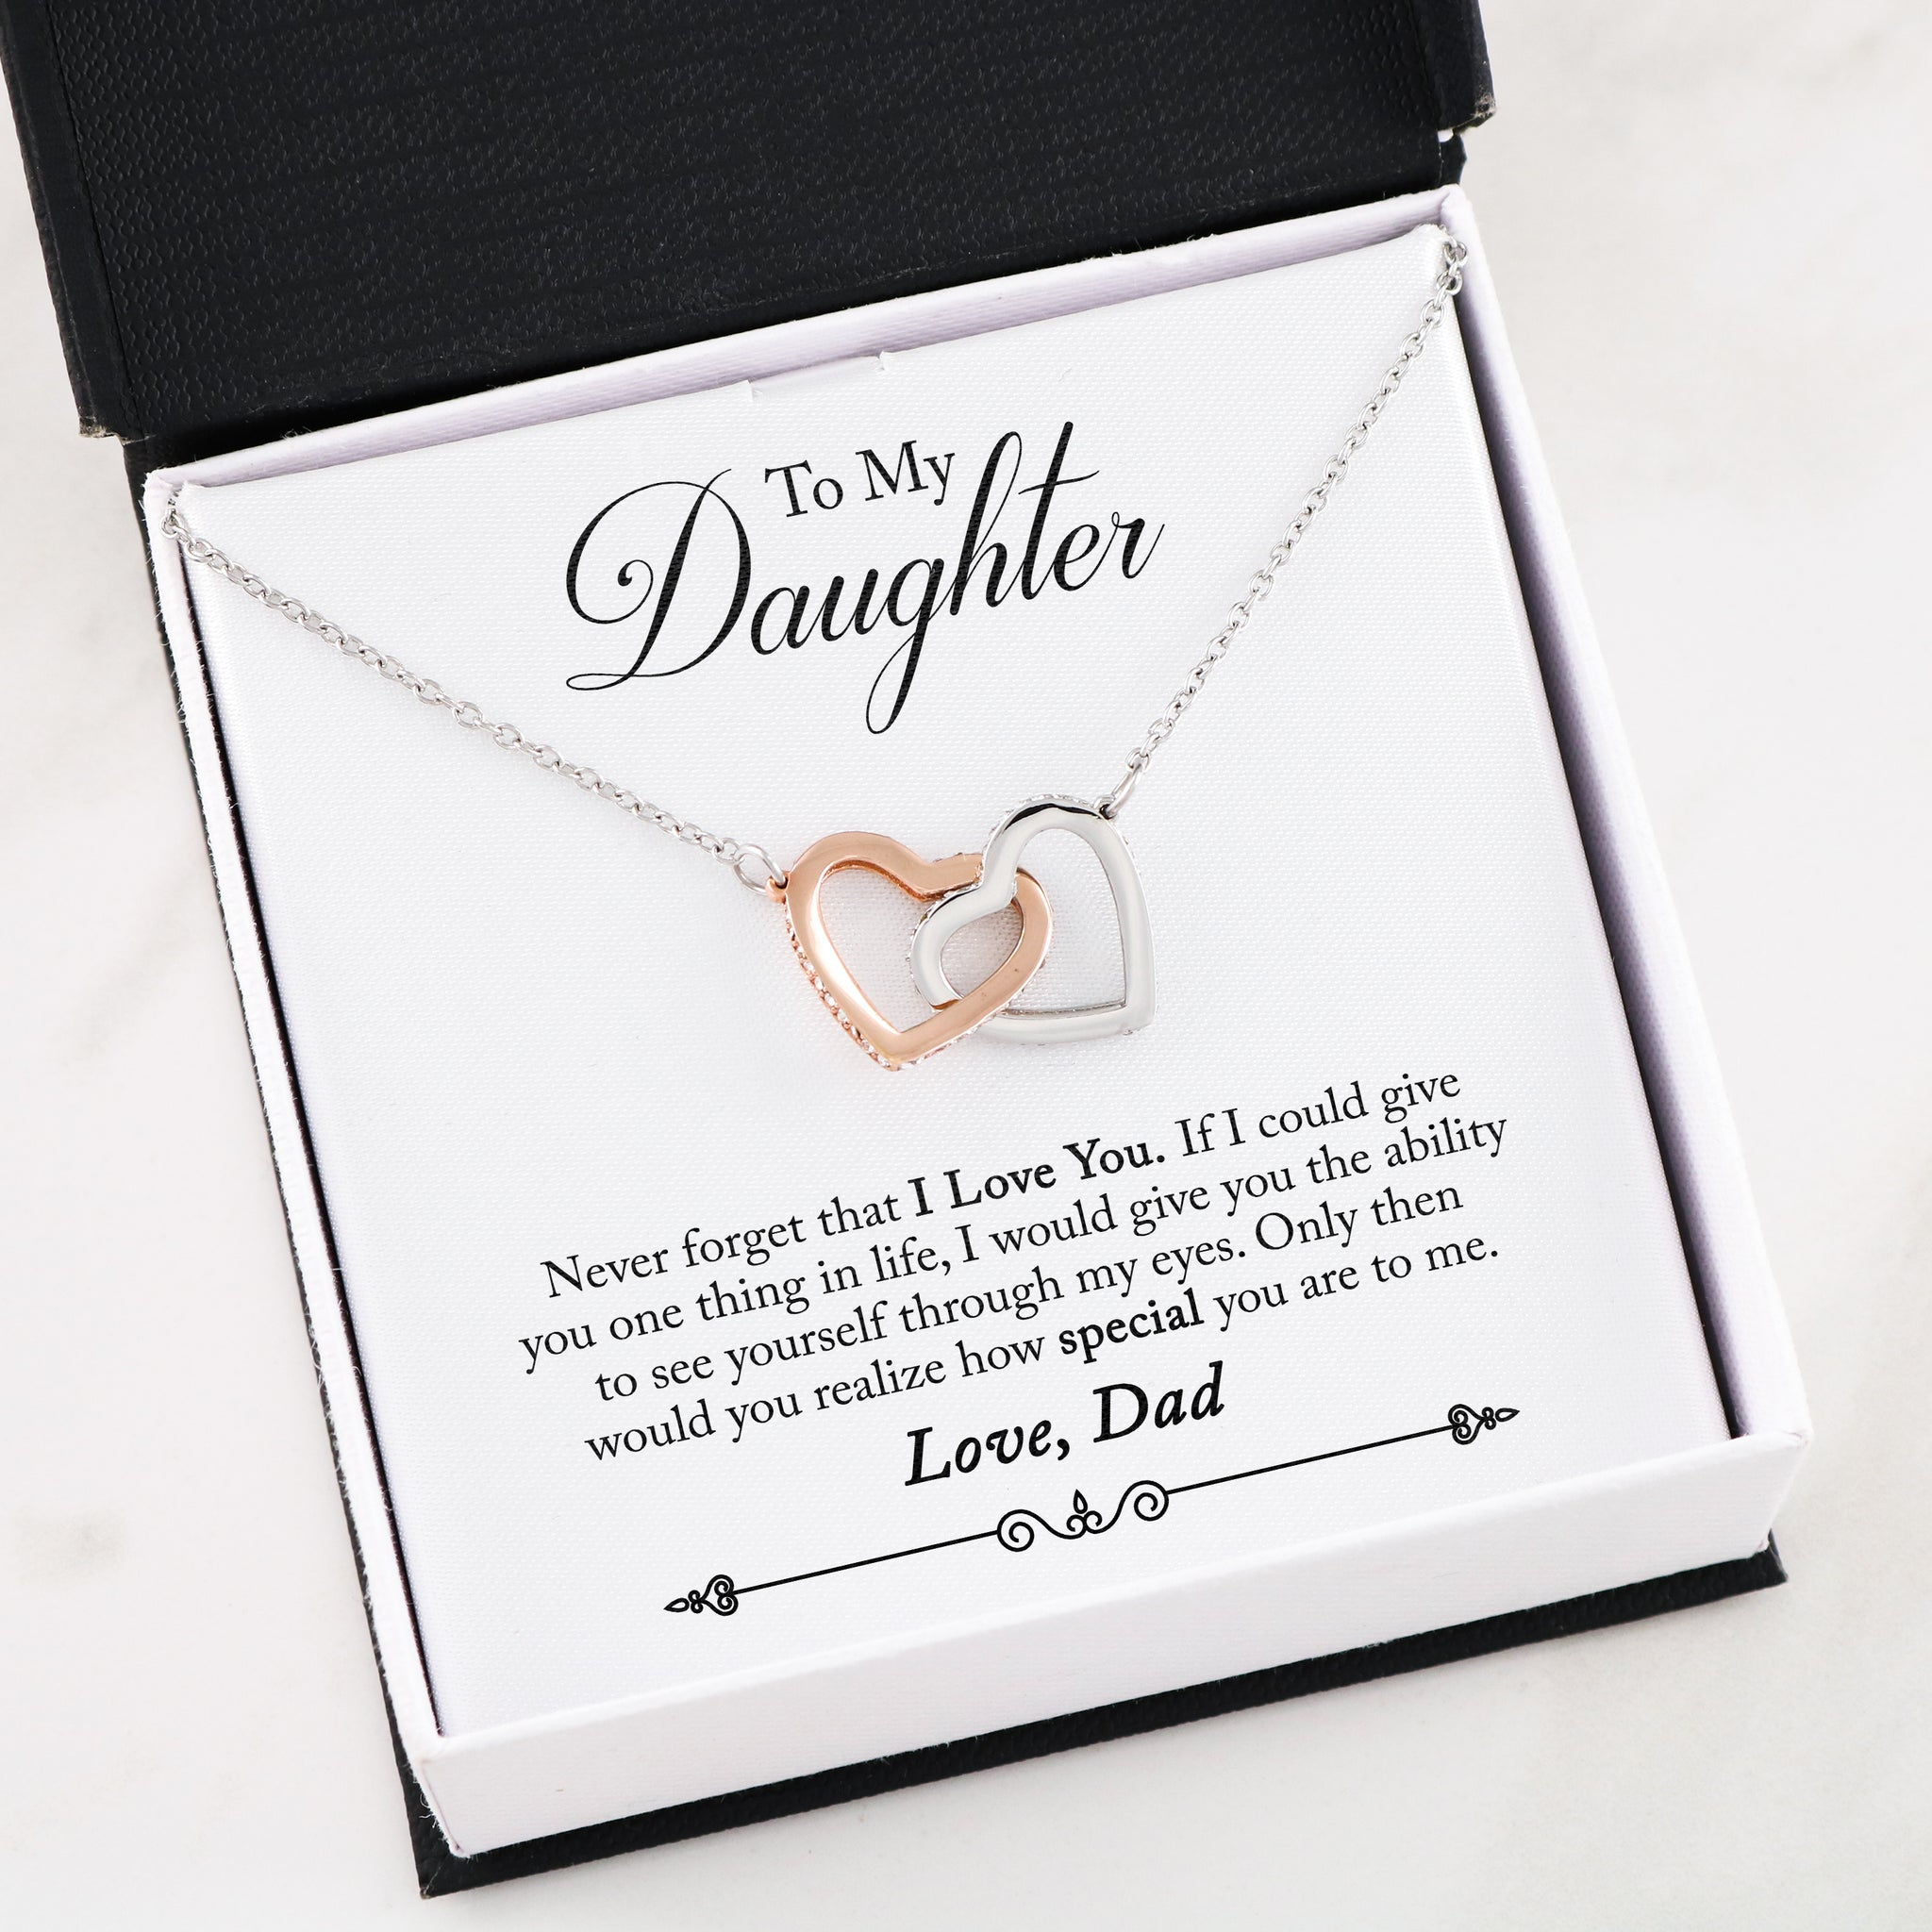 Dad to Daughter - Never Forget That I Love You Interlocking Heart Necklace